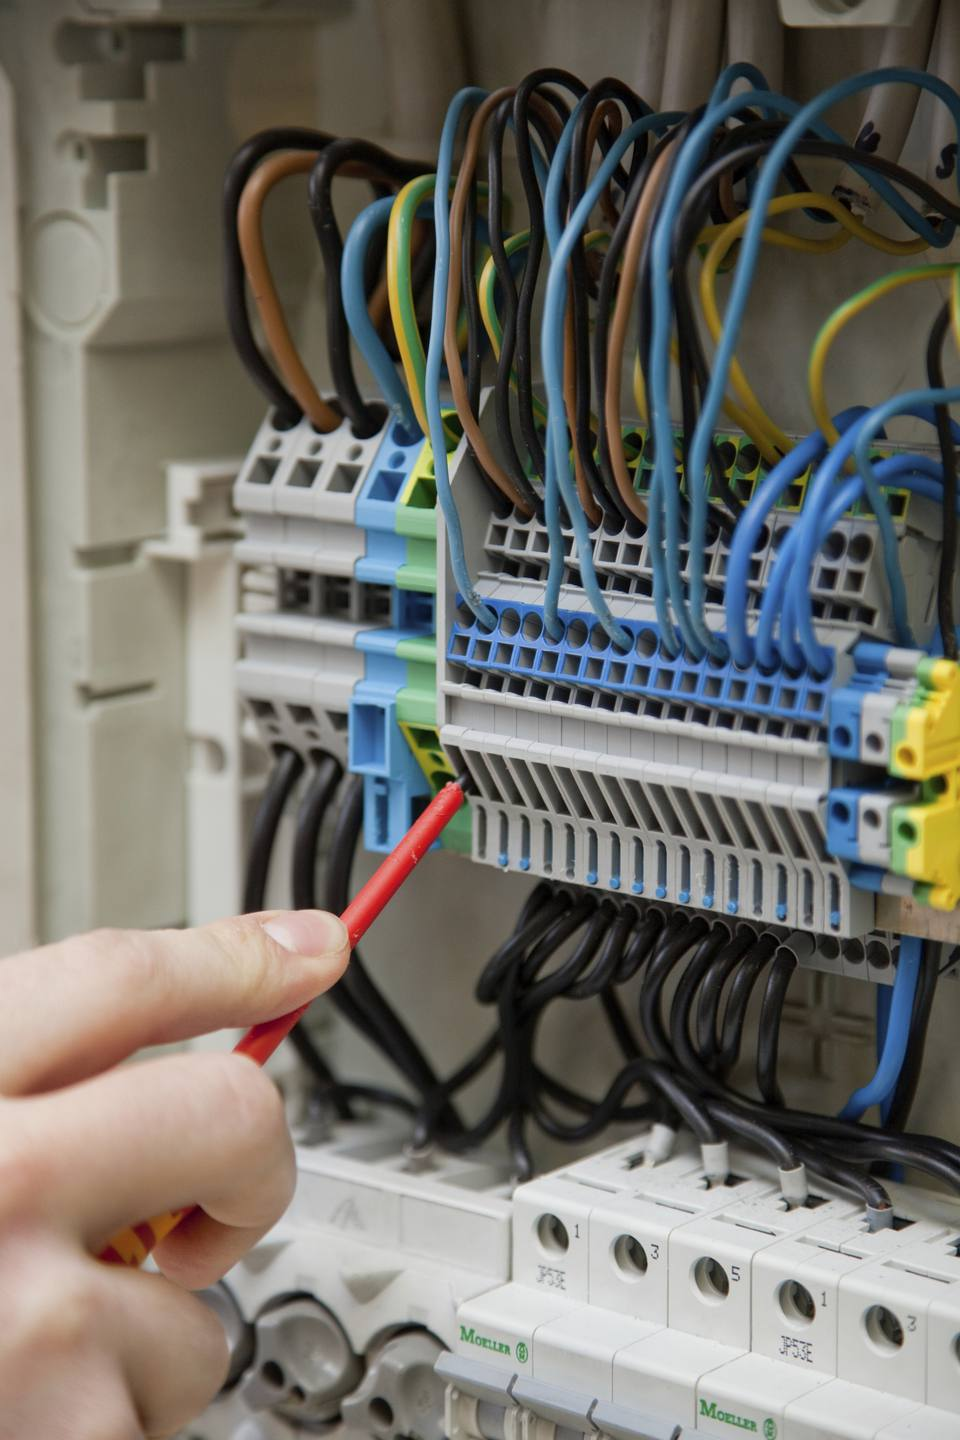 Work on a switchboard or fuse box